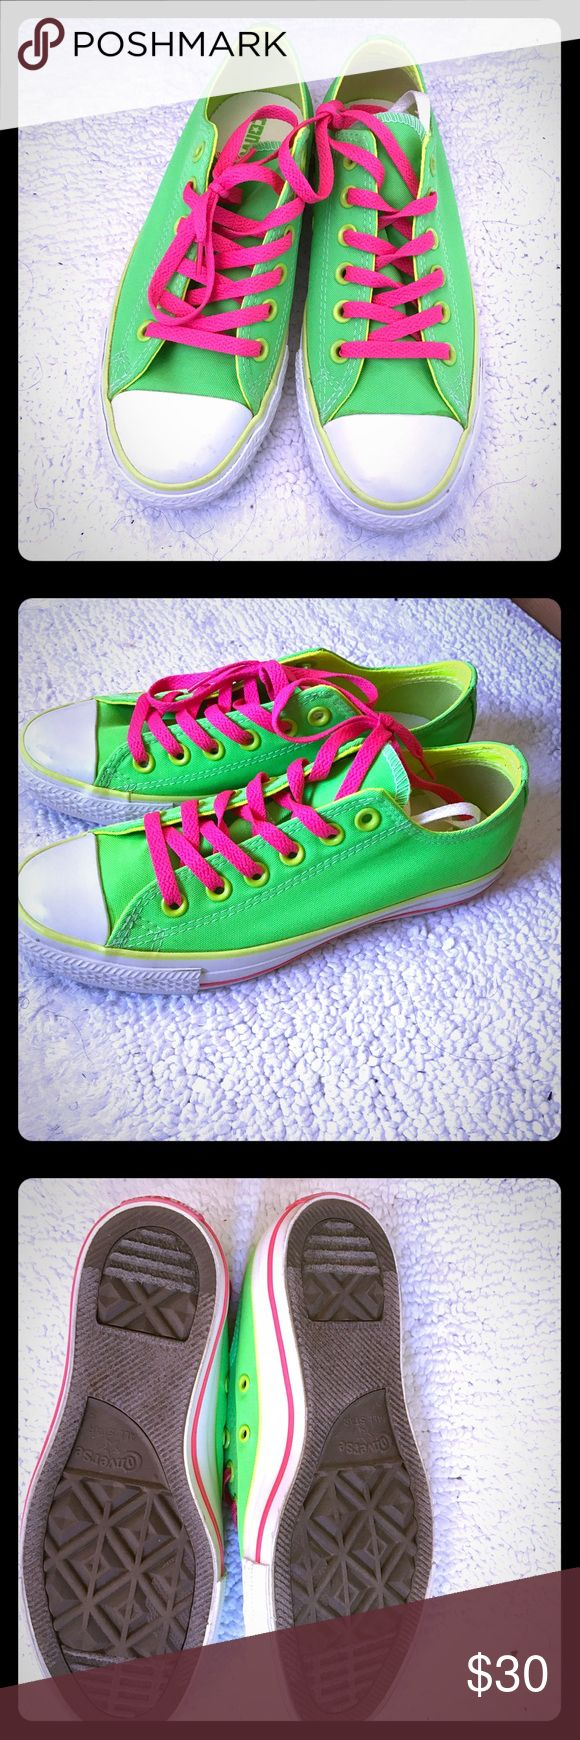 Neon Green Converse Brand new converses. Neon green, pink and white. Neon yellow on inside of shoes. Extra white laces. Can fit a mans size 5. Converse Shoes Sneakers